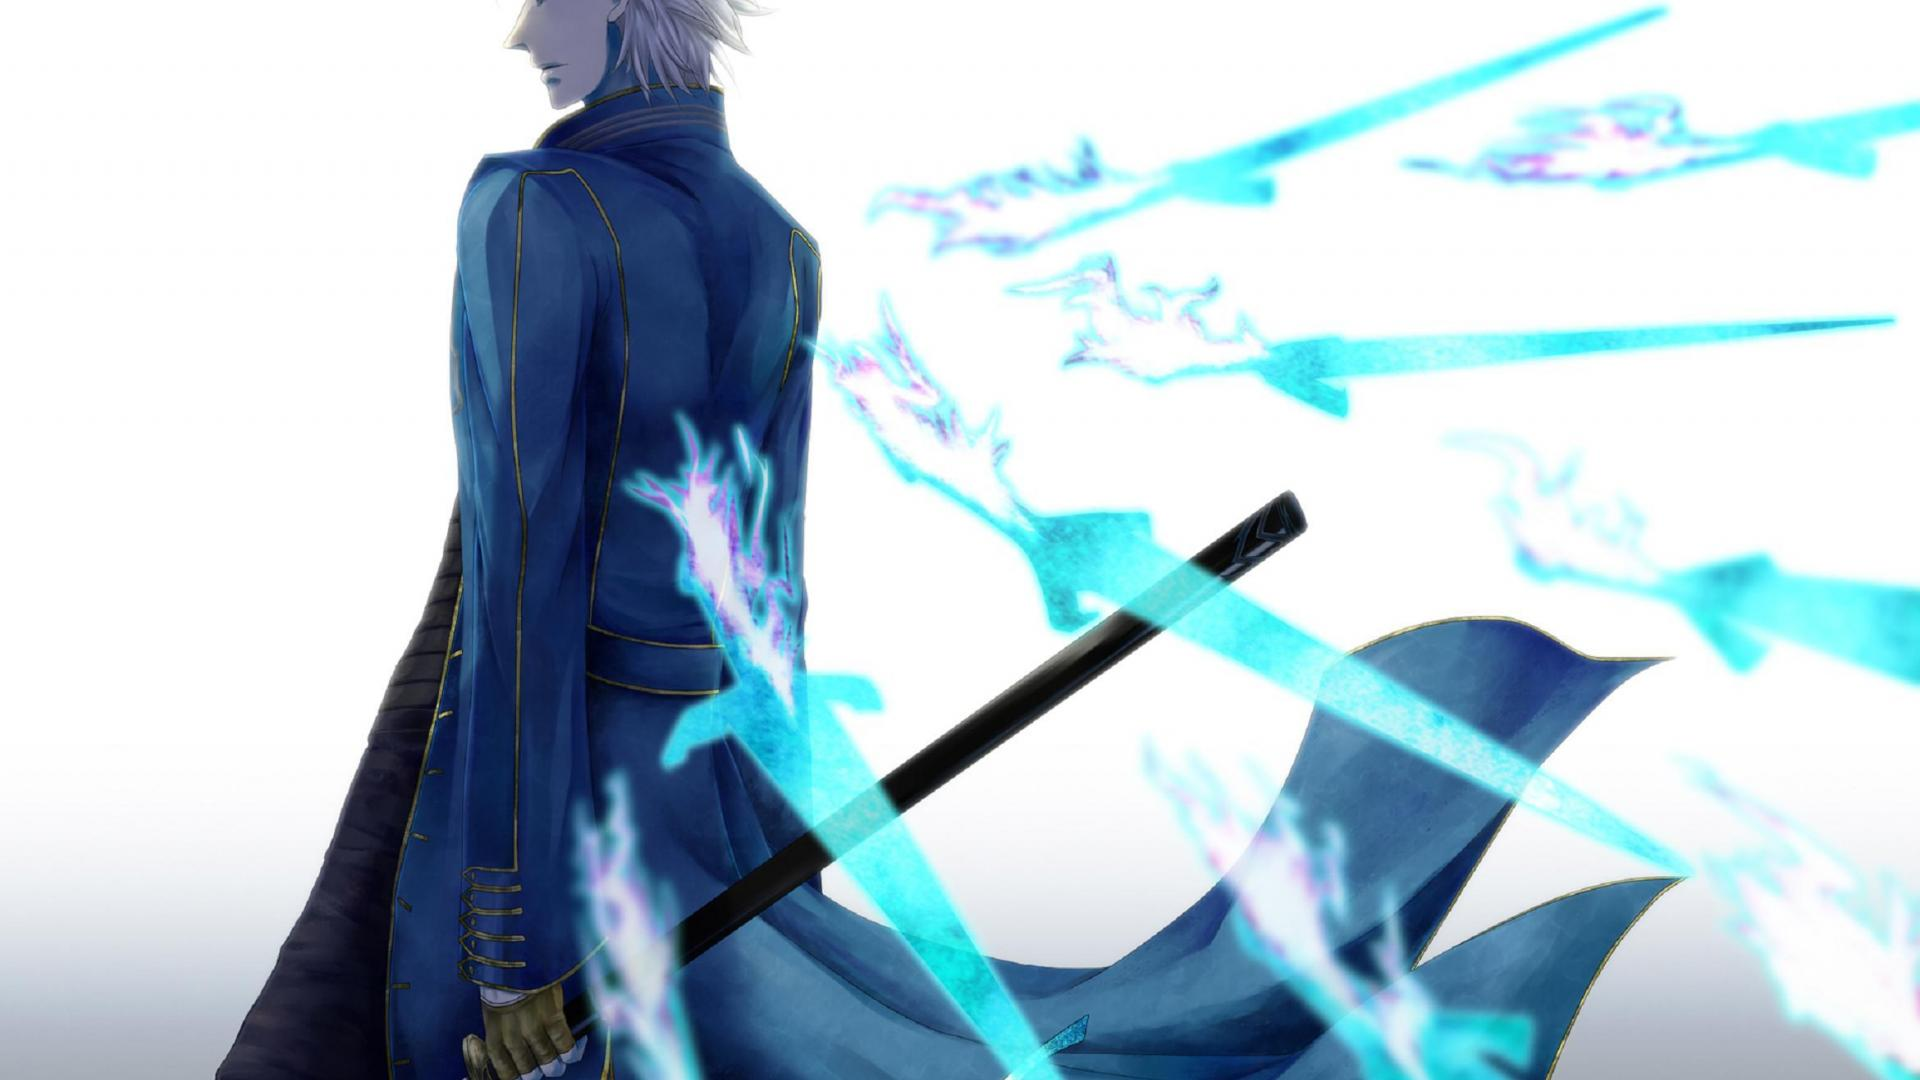 Vergil Yamato Sword Hd Wallpaper: 30 Pictures Of Devil May Cry Vergil In HQ Definition